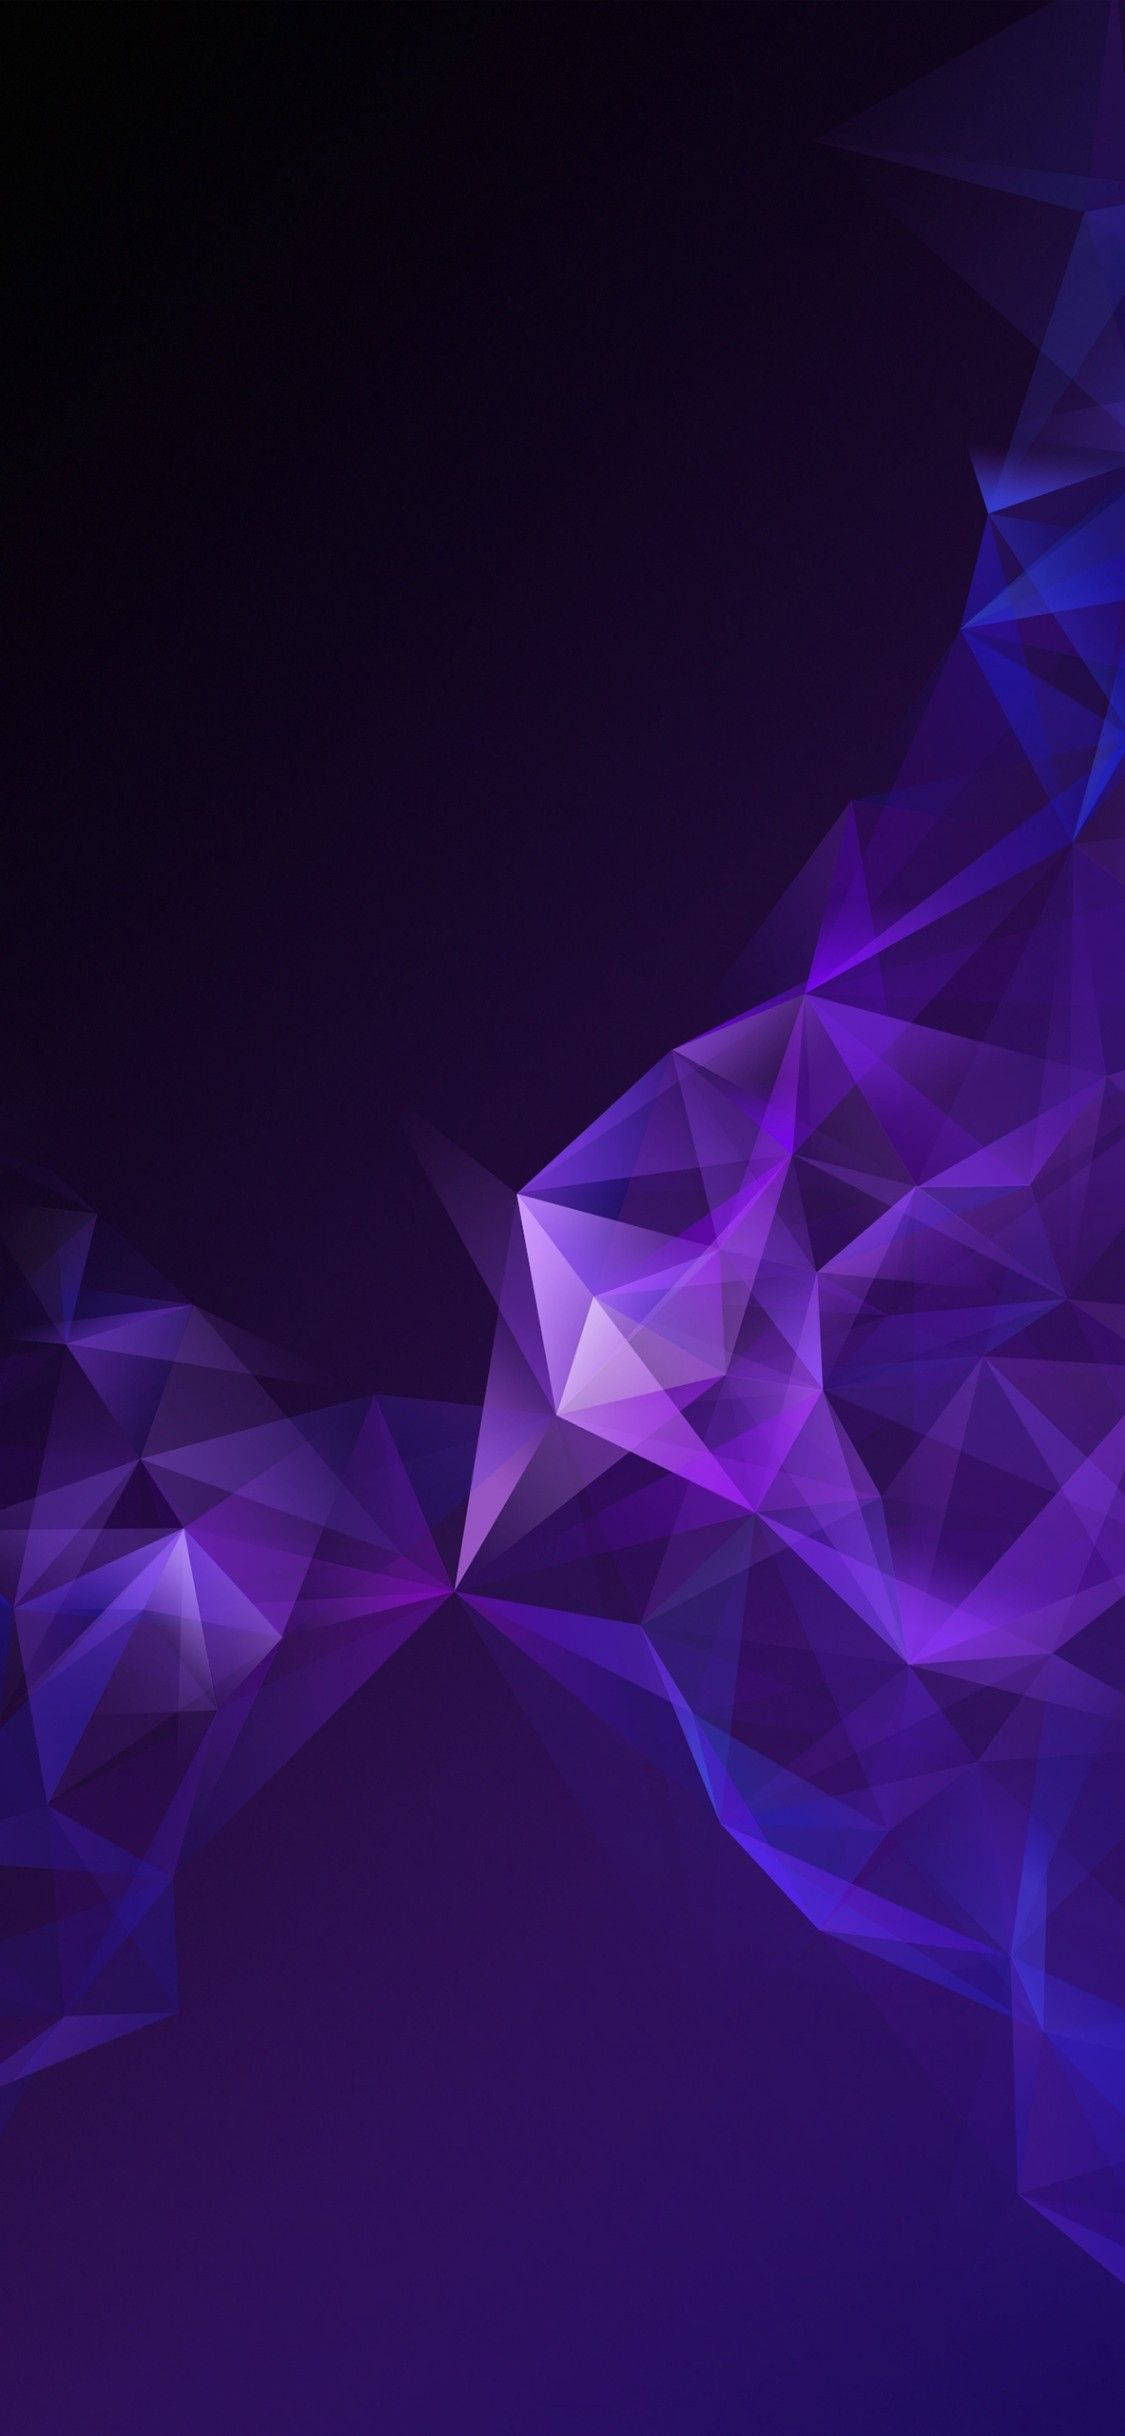 violet s9 s9 plus wallpaper galaxy colour abstract digital